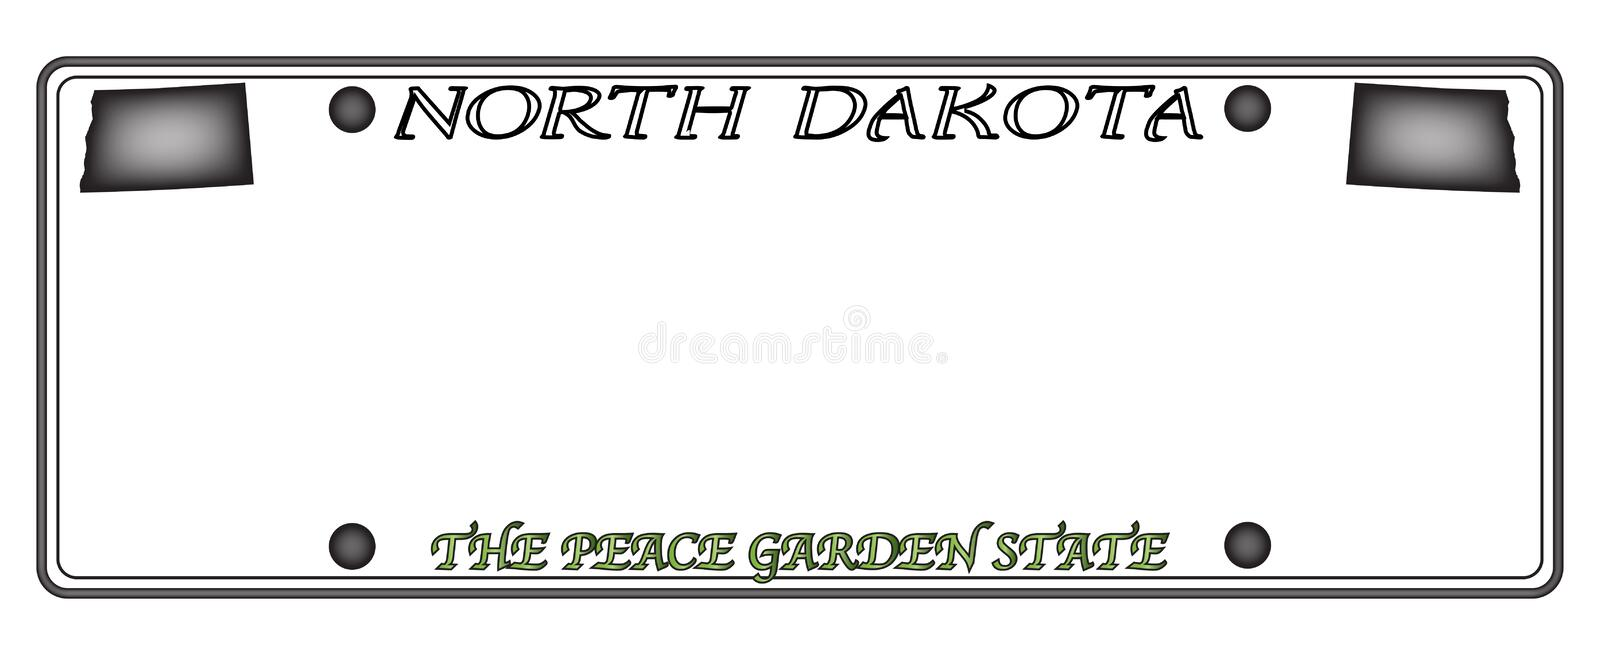 North Dakota License Plate. A North Dakota state license plate design isolated on a white background vector illustration